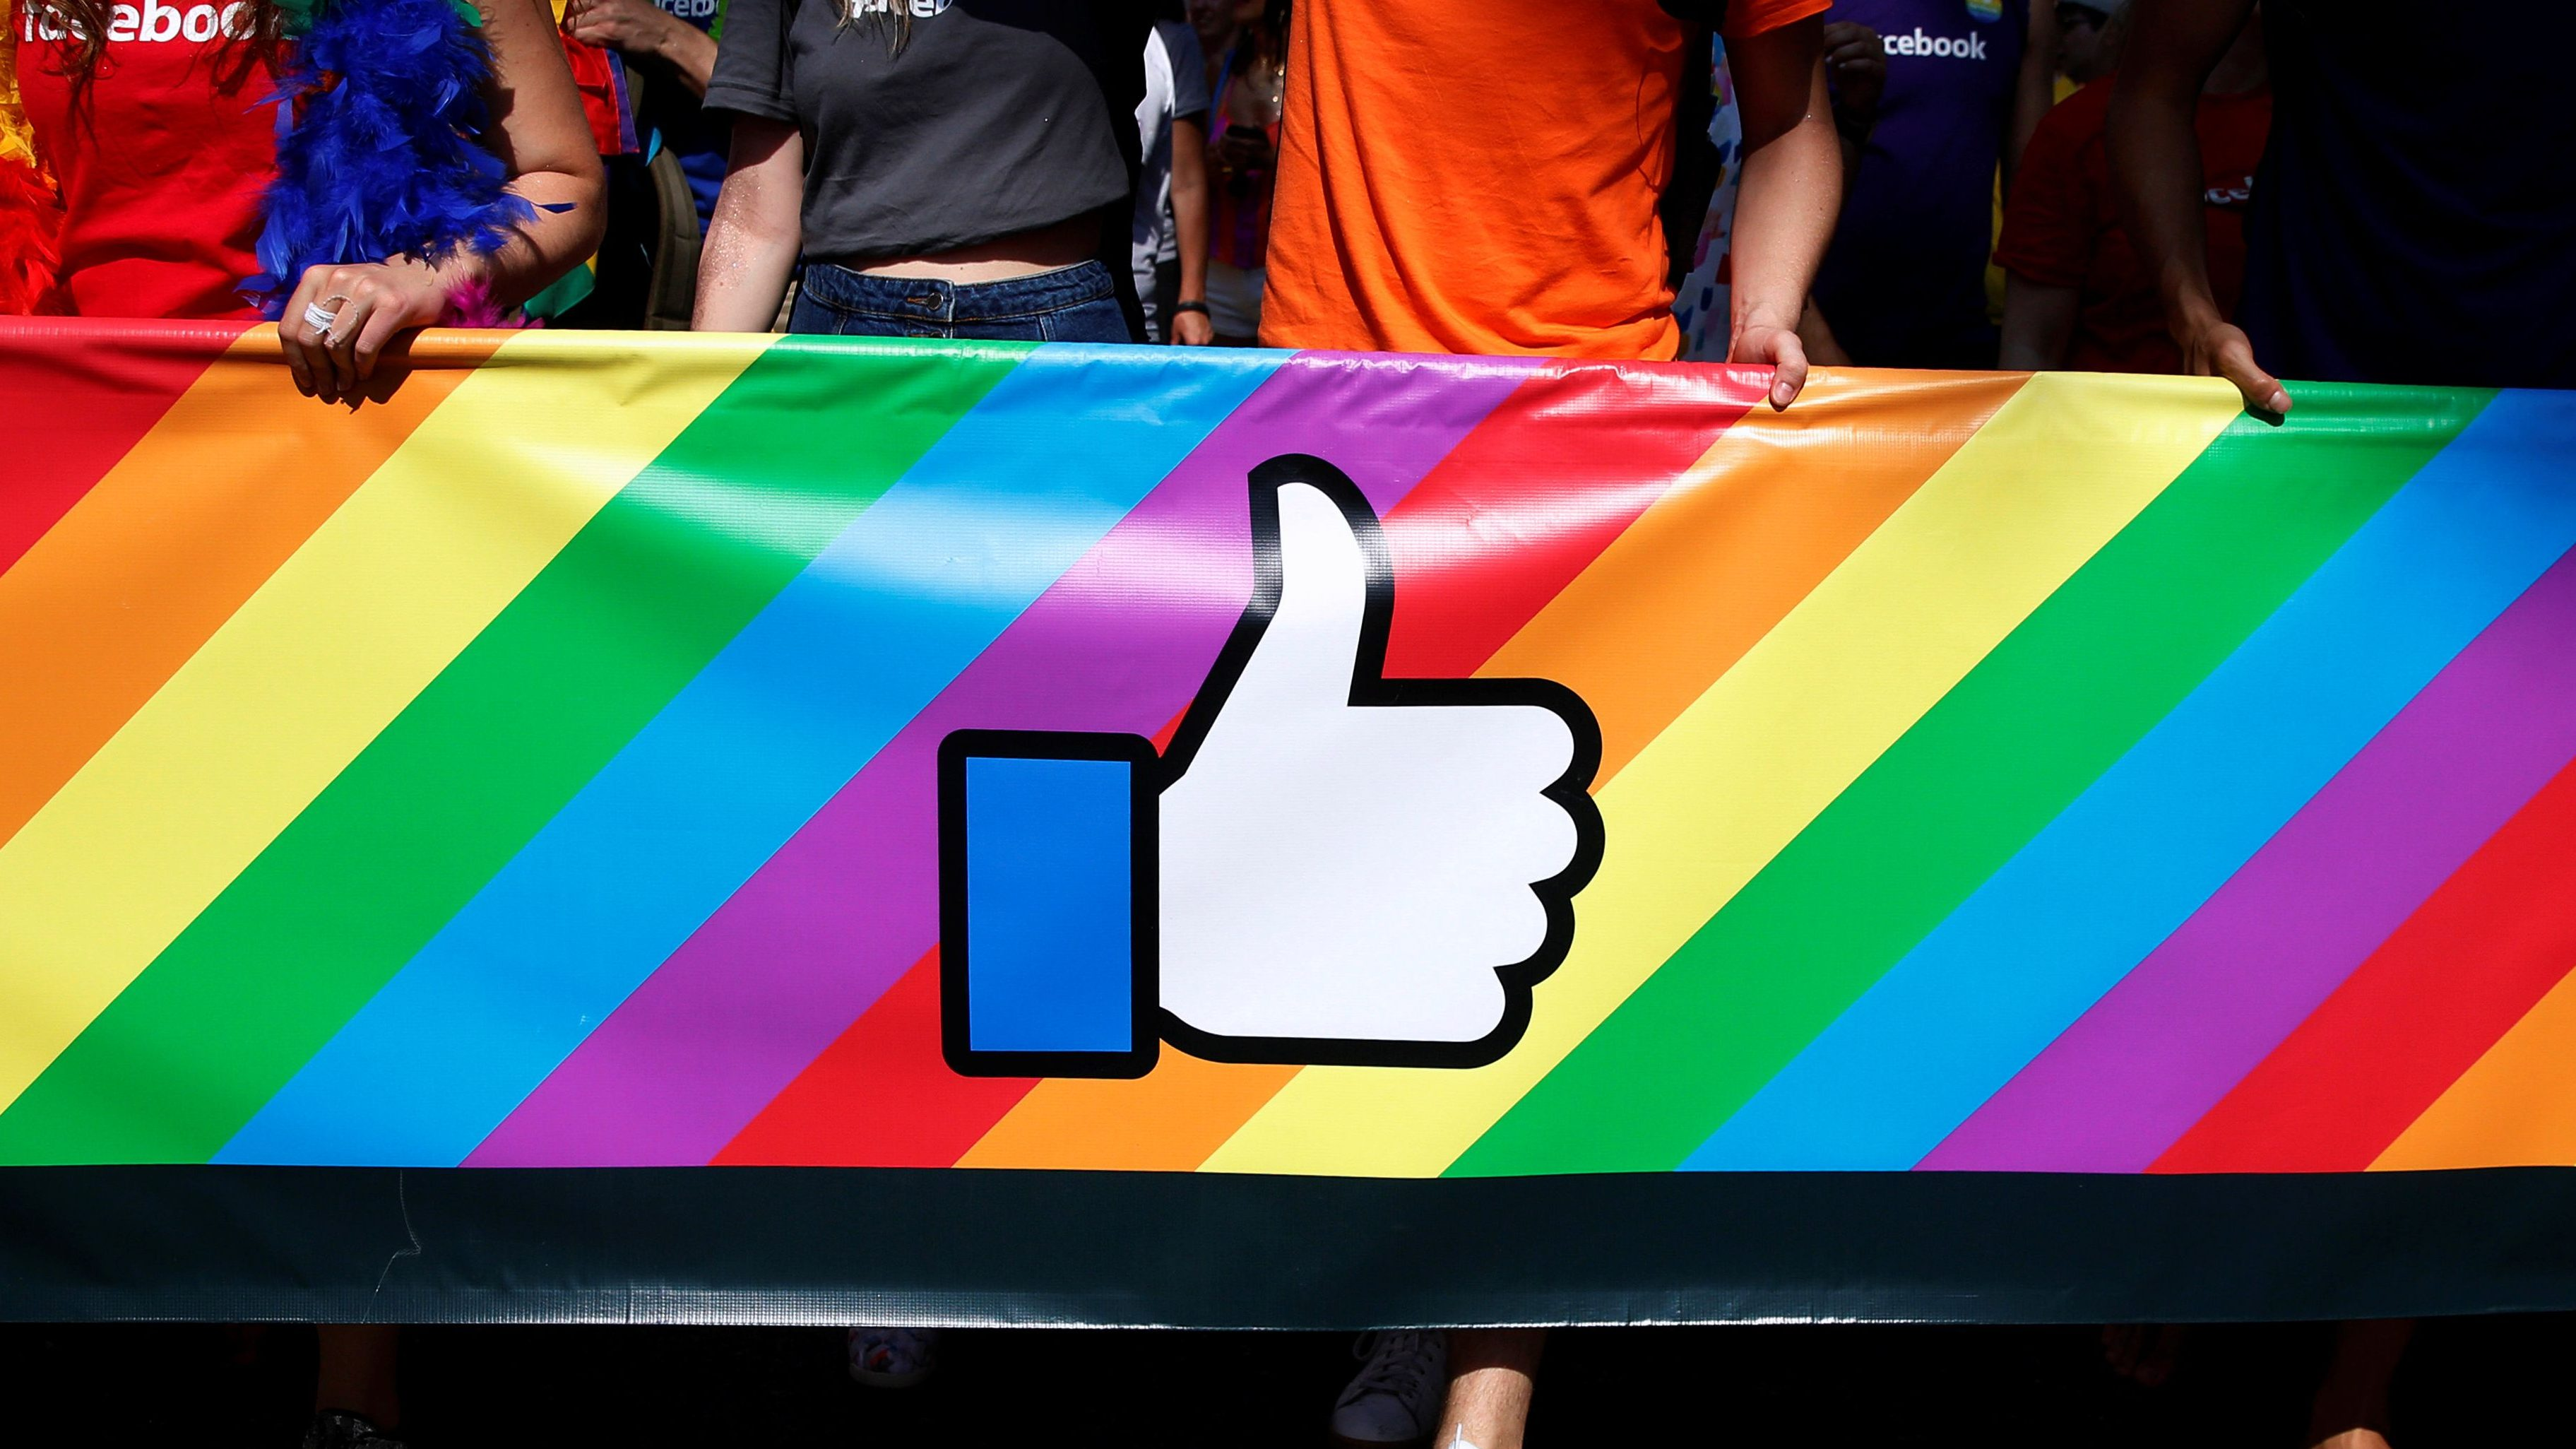 Employees of Facebook march in the annual NYC Pride parade in New York City, New York, U.S., June 26, 2016.